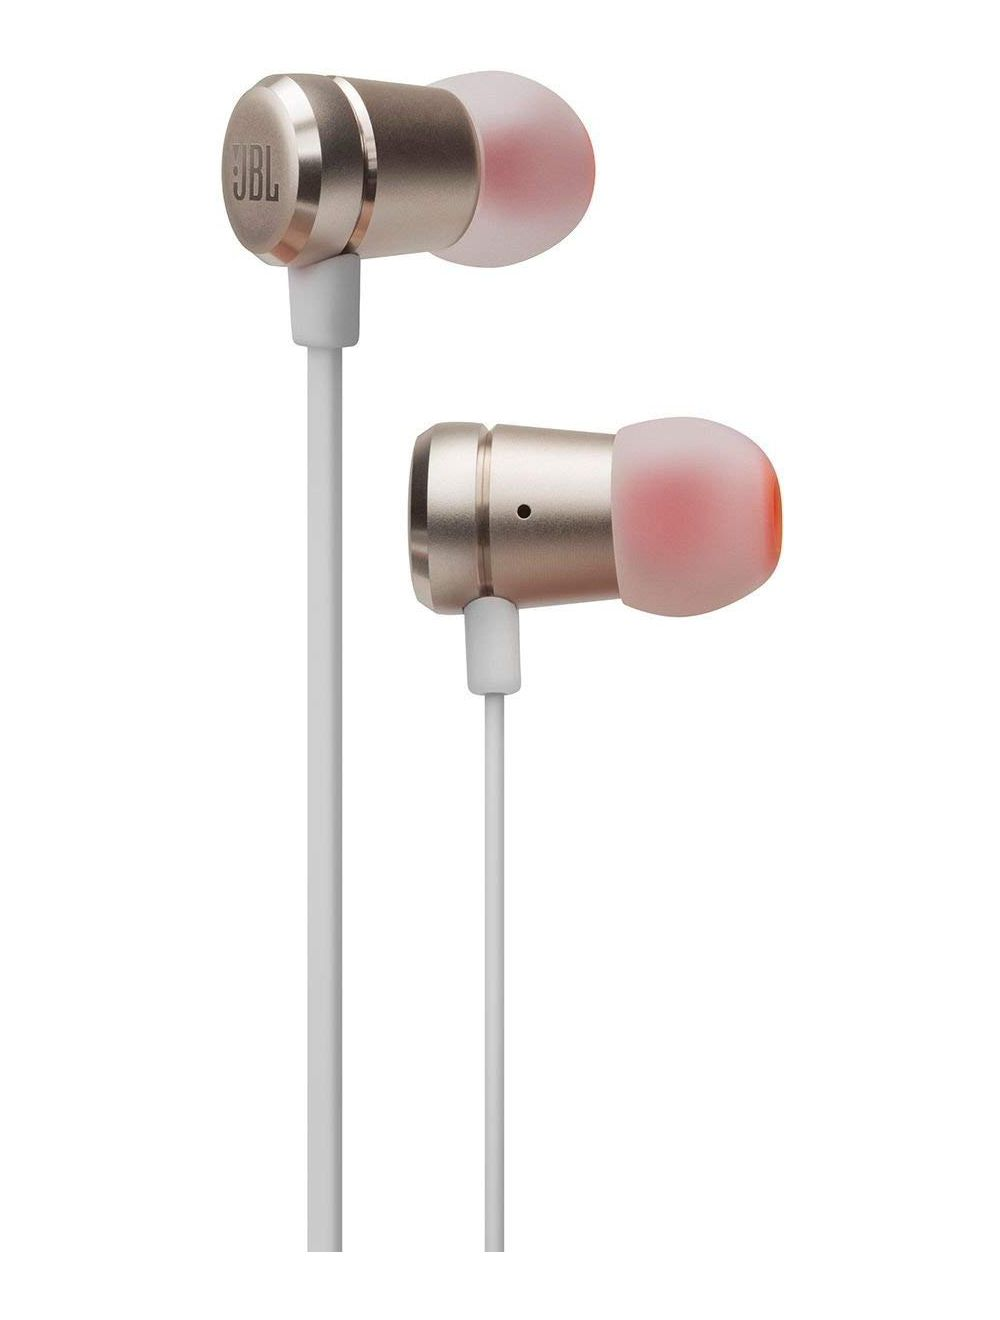 What Expert say about JBL Tune 290 In-Ear Headphones